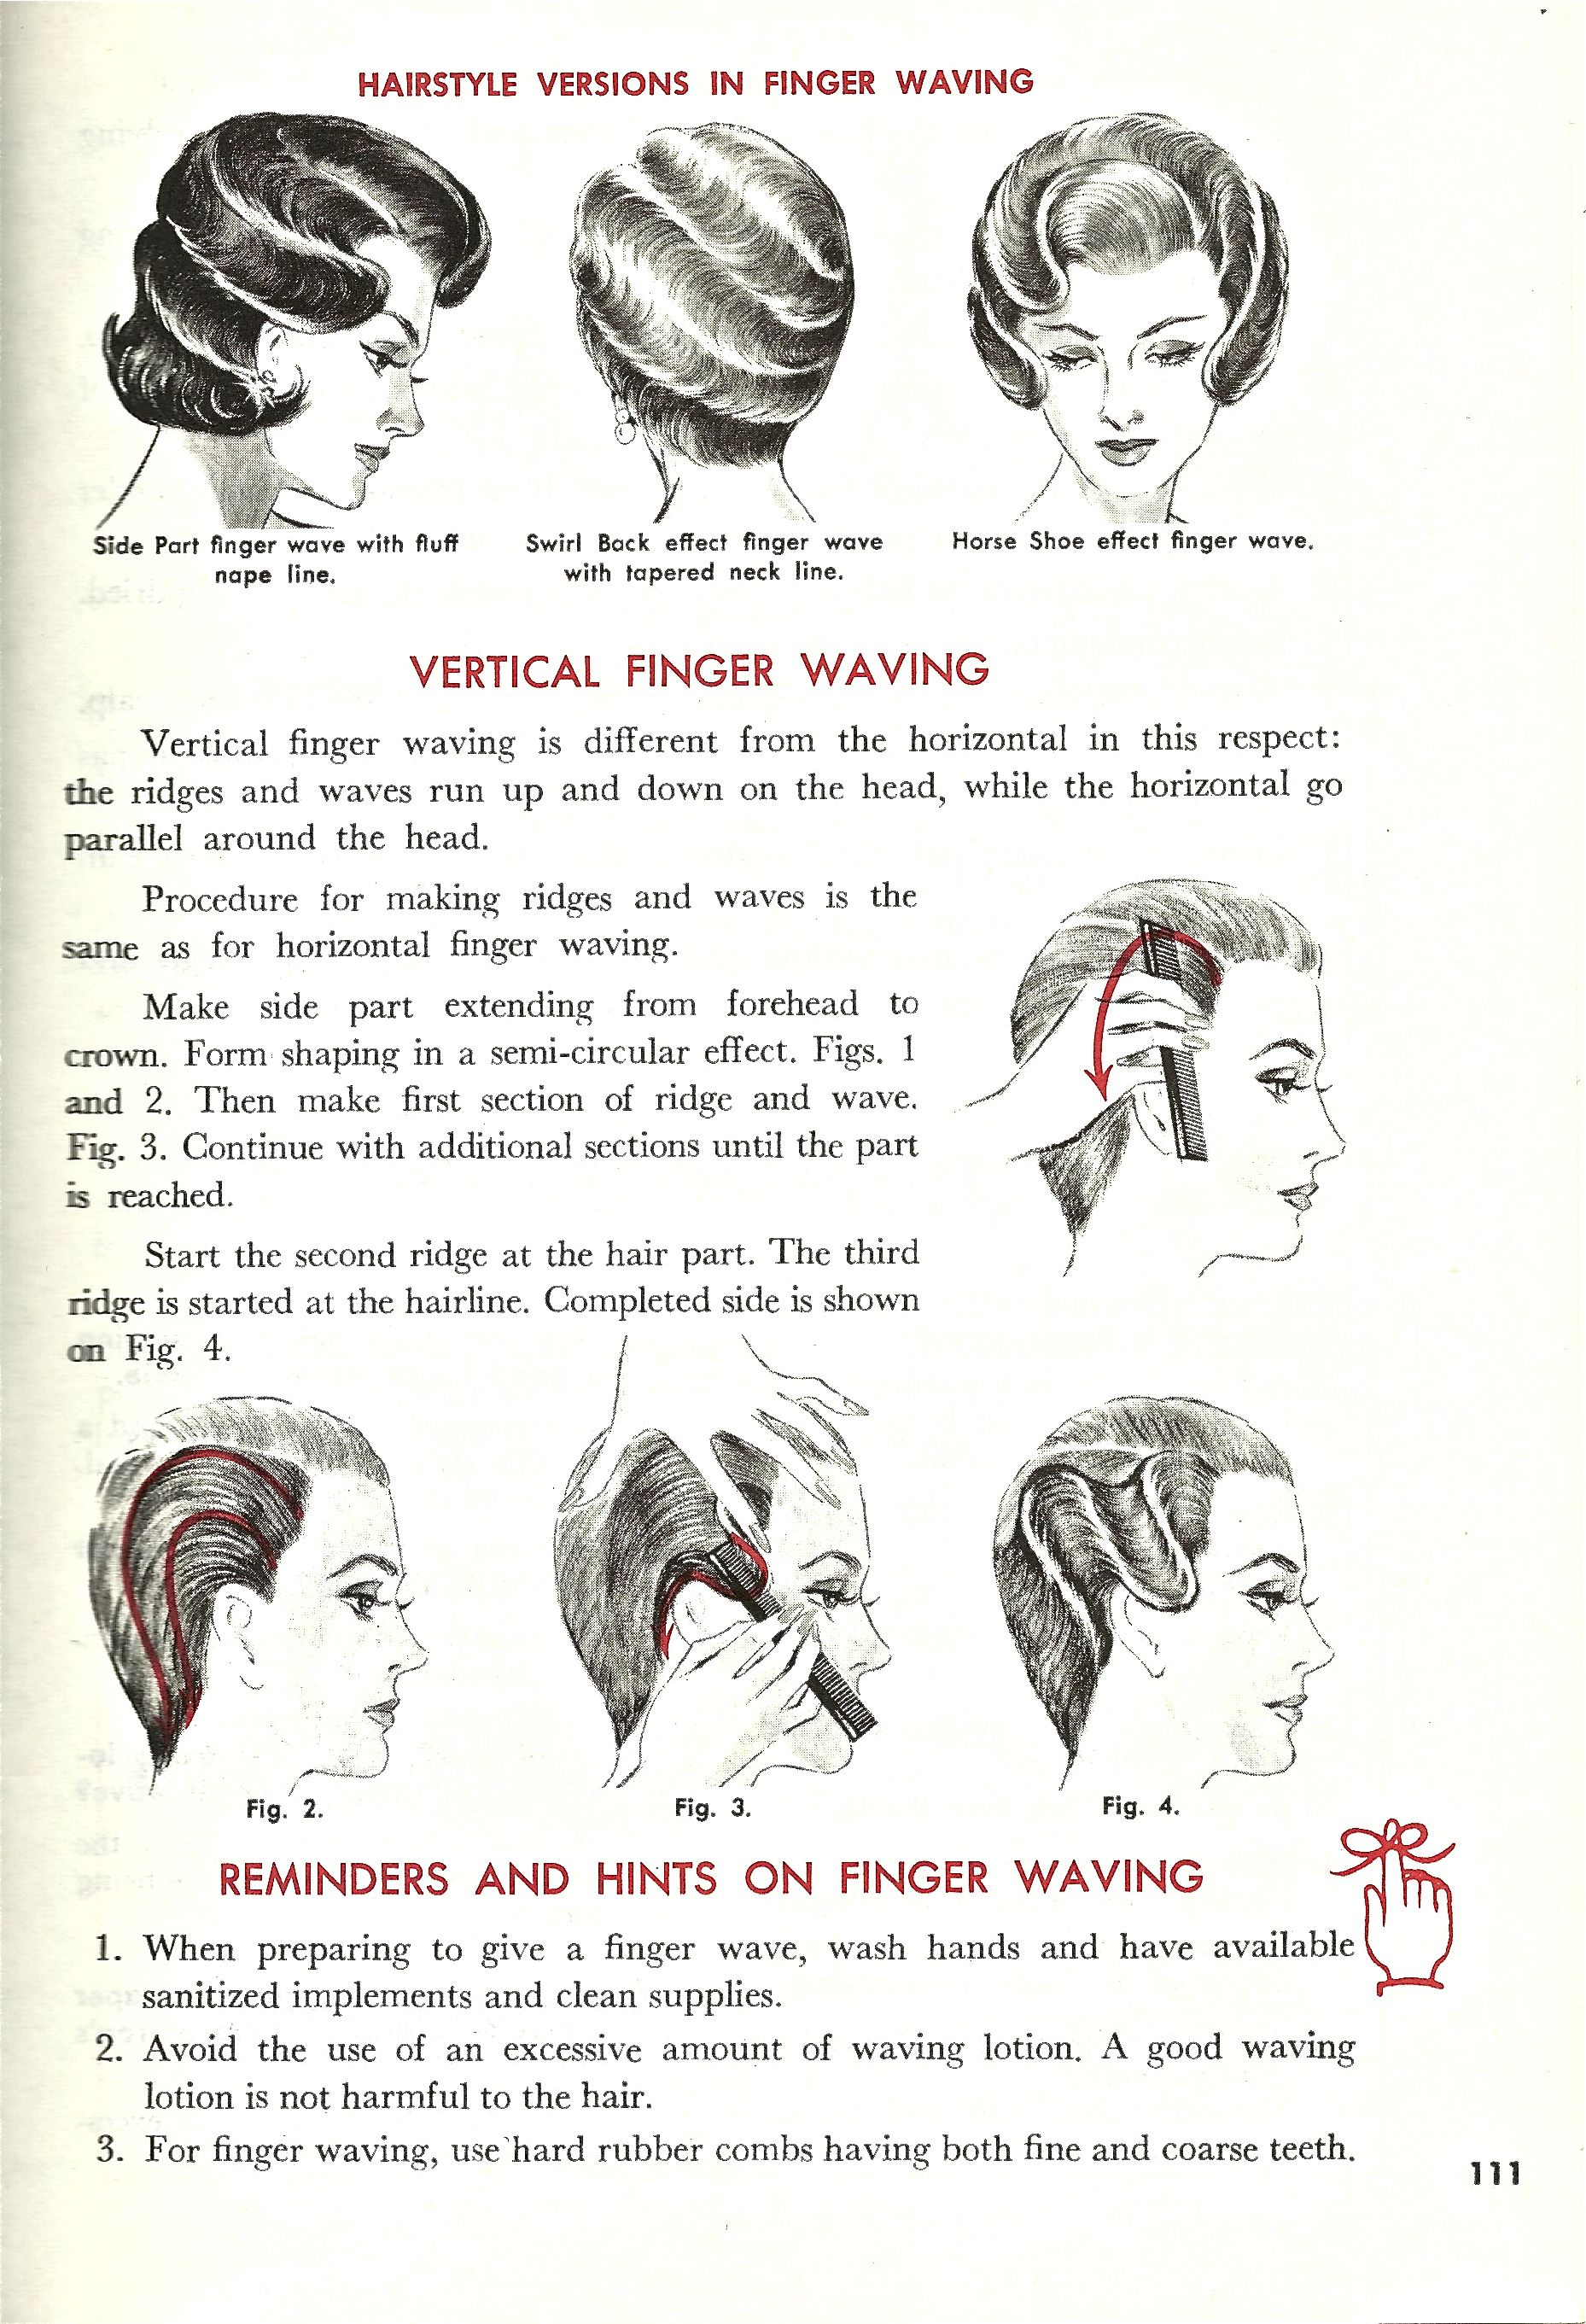 vintage pin curls diagram partial mesh topology curl state board best wiring library finger waving instructional never underestimate a good finer wave wow i